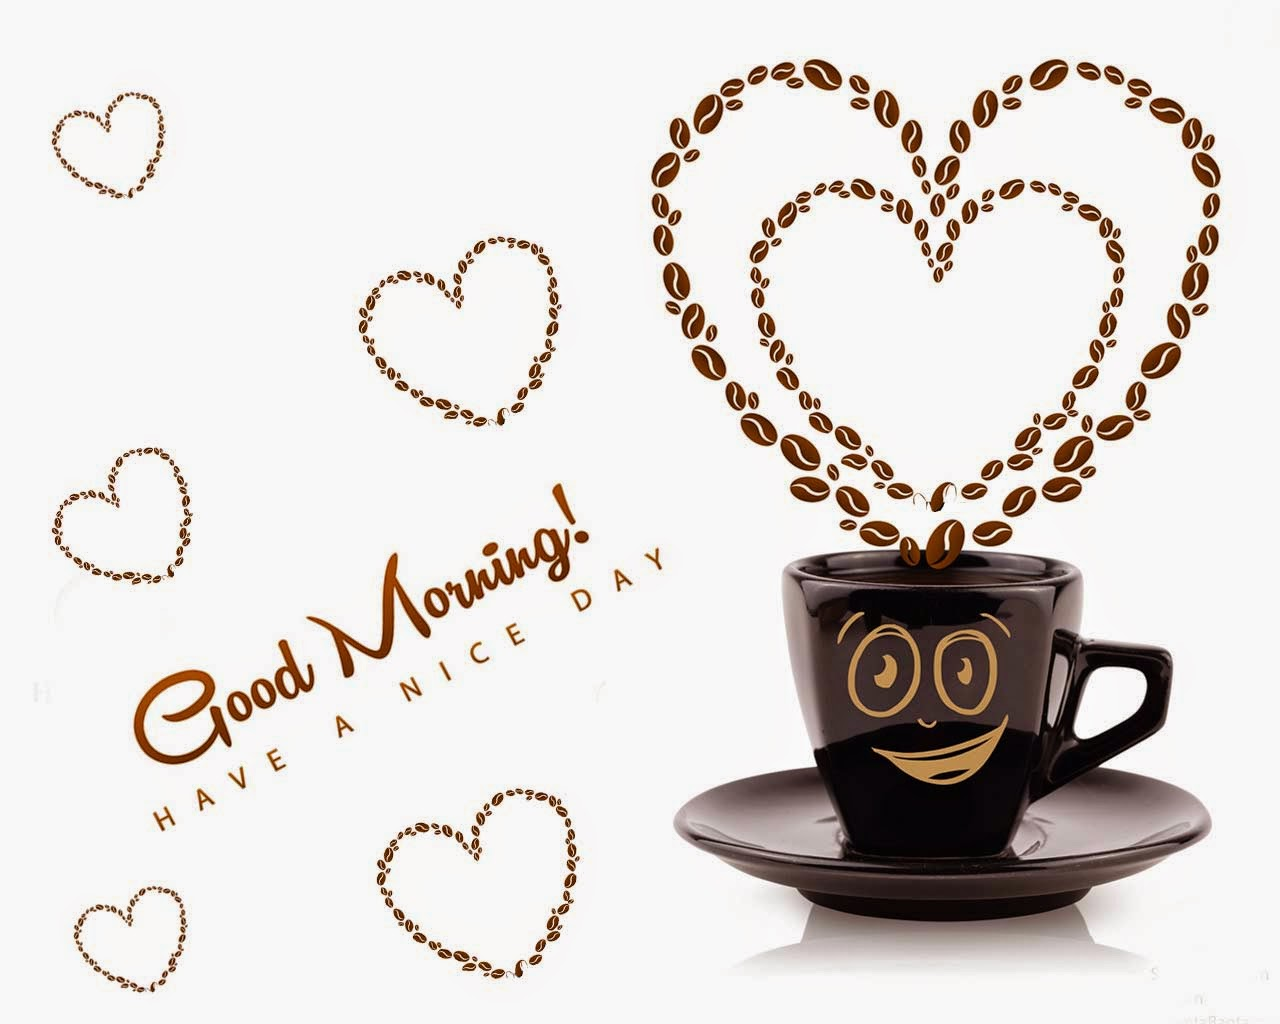 Gm Wallpaper In Love : Allfreshwallpaper: Lovely and Beautiful Good Morning Wallpapers